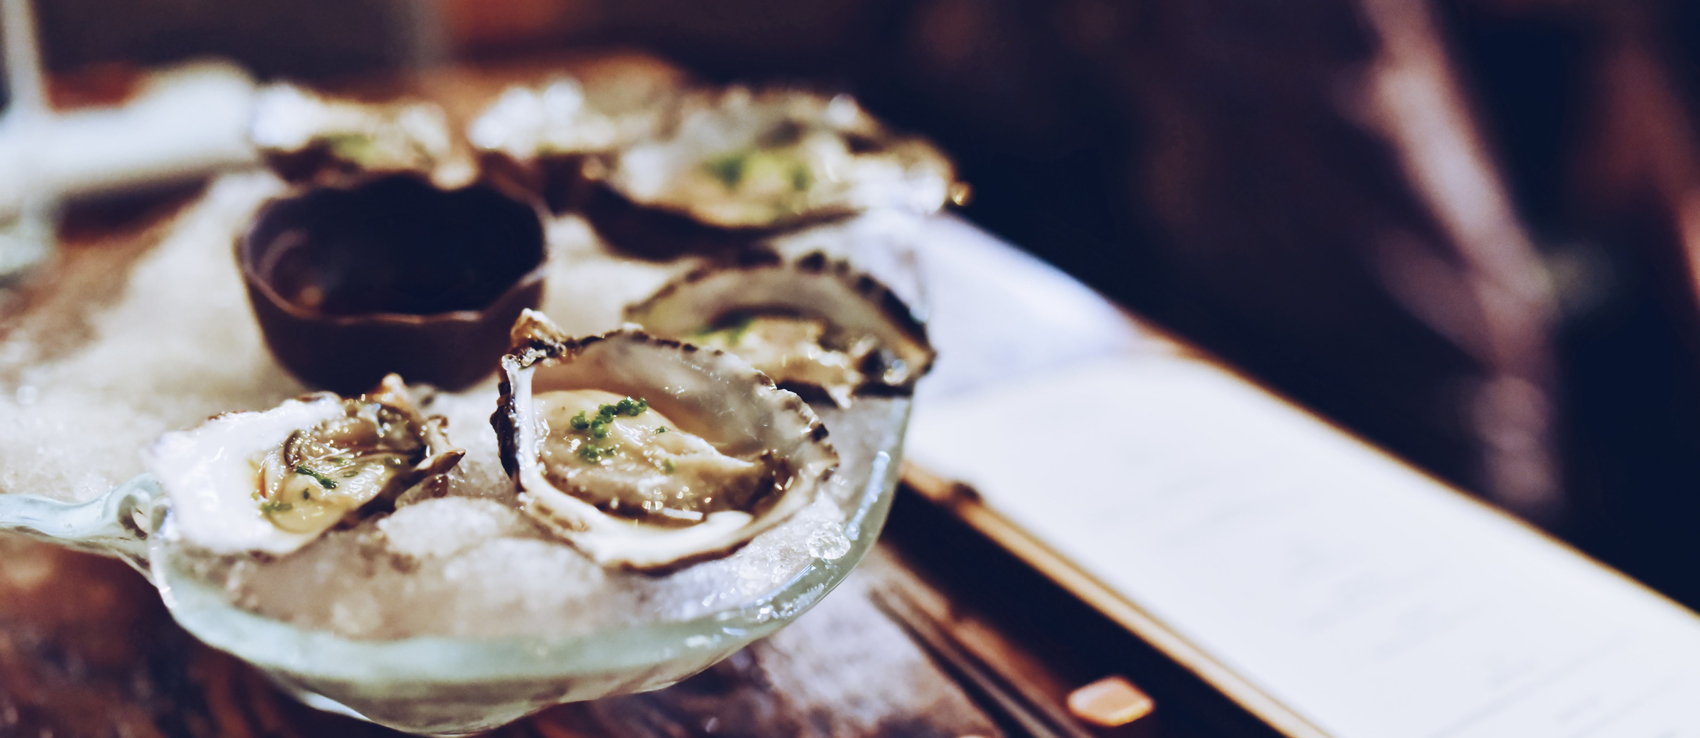 Oyster Specials throughout the state